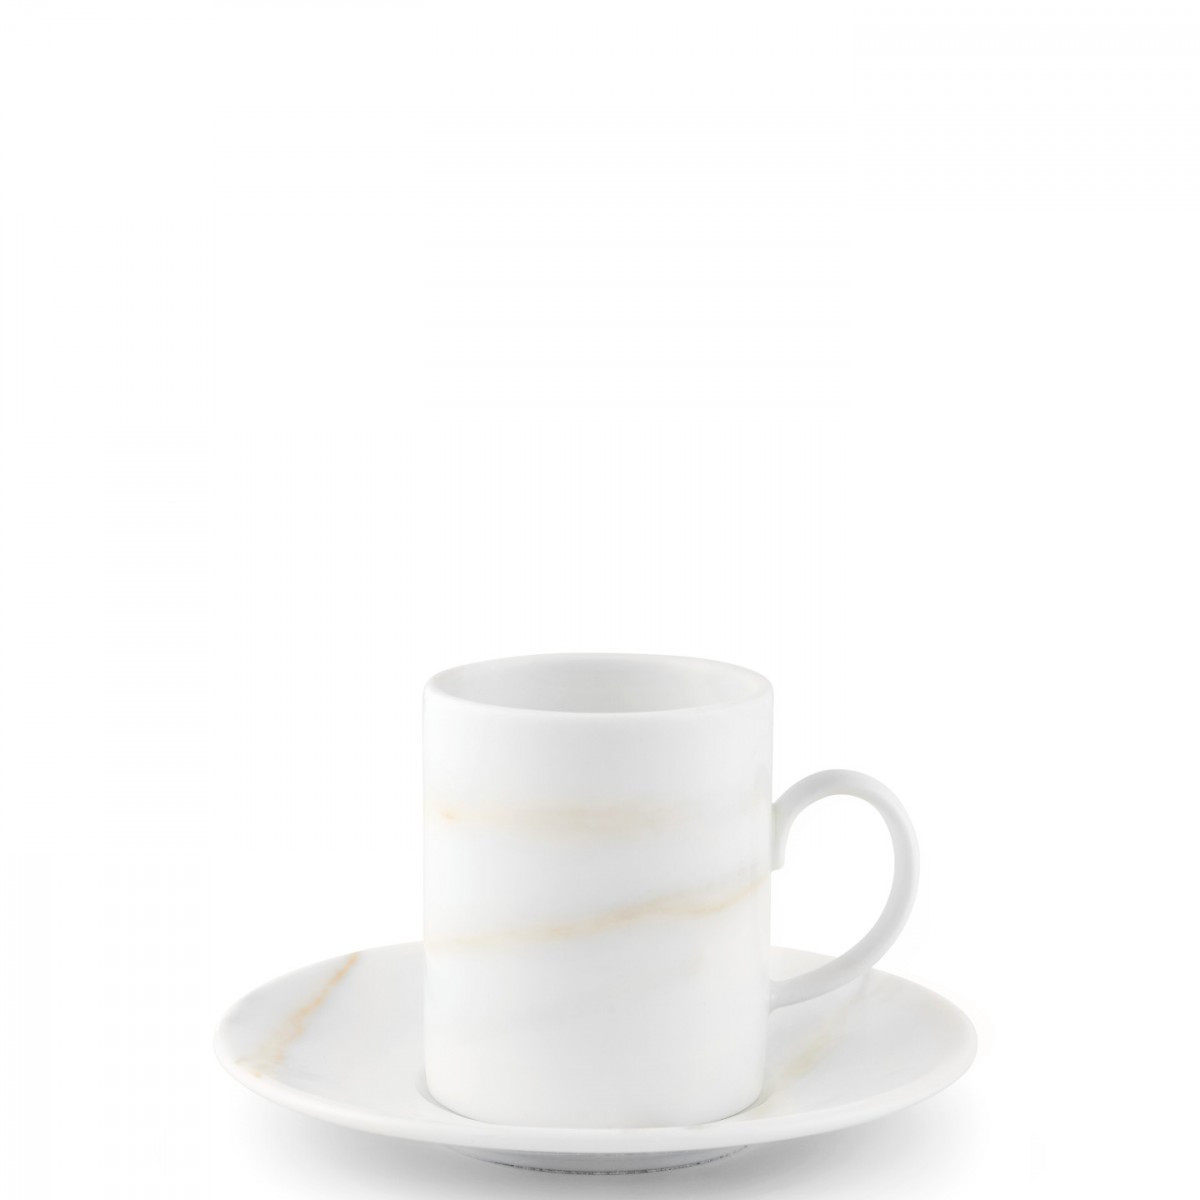 vera wang sequin vase of vera wang elements of style venato imperial espresso cup saucer with vera wang venato imperial espresso cup saucer